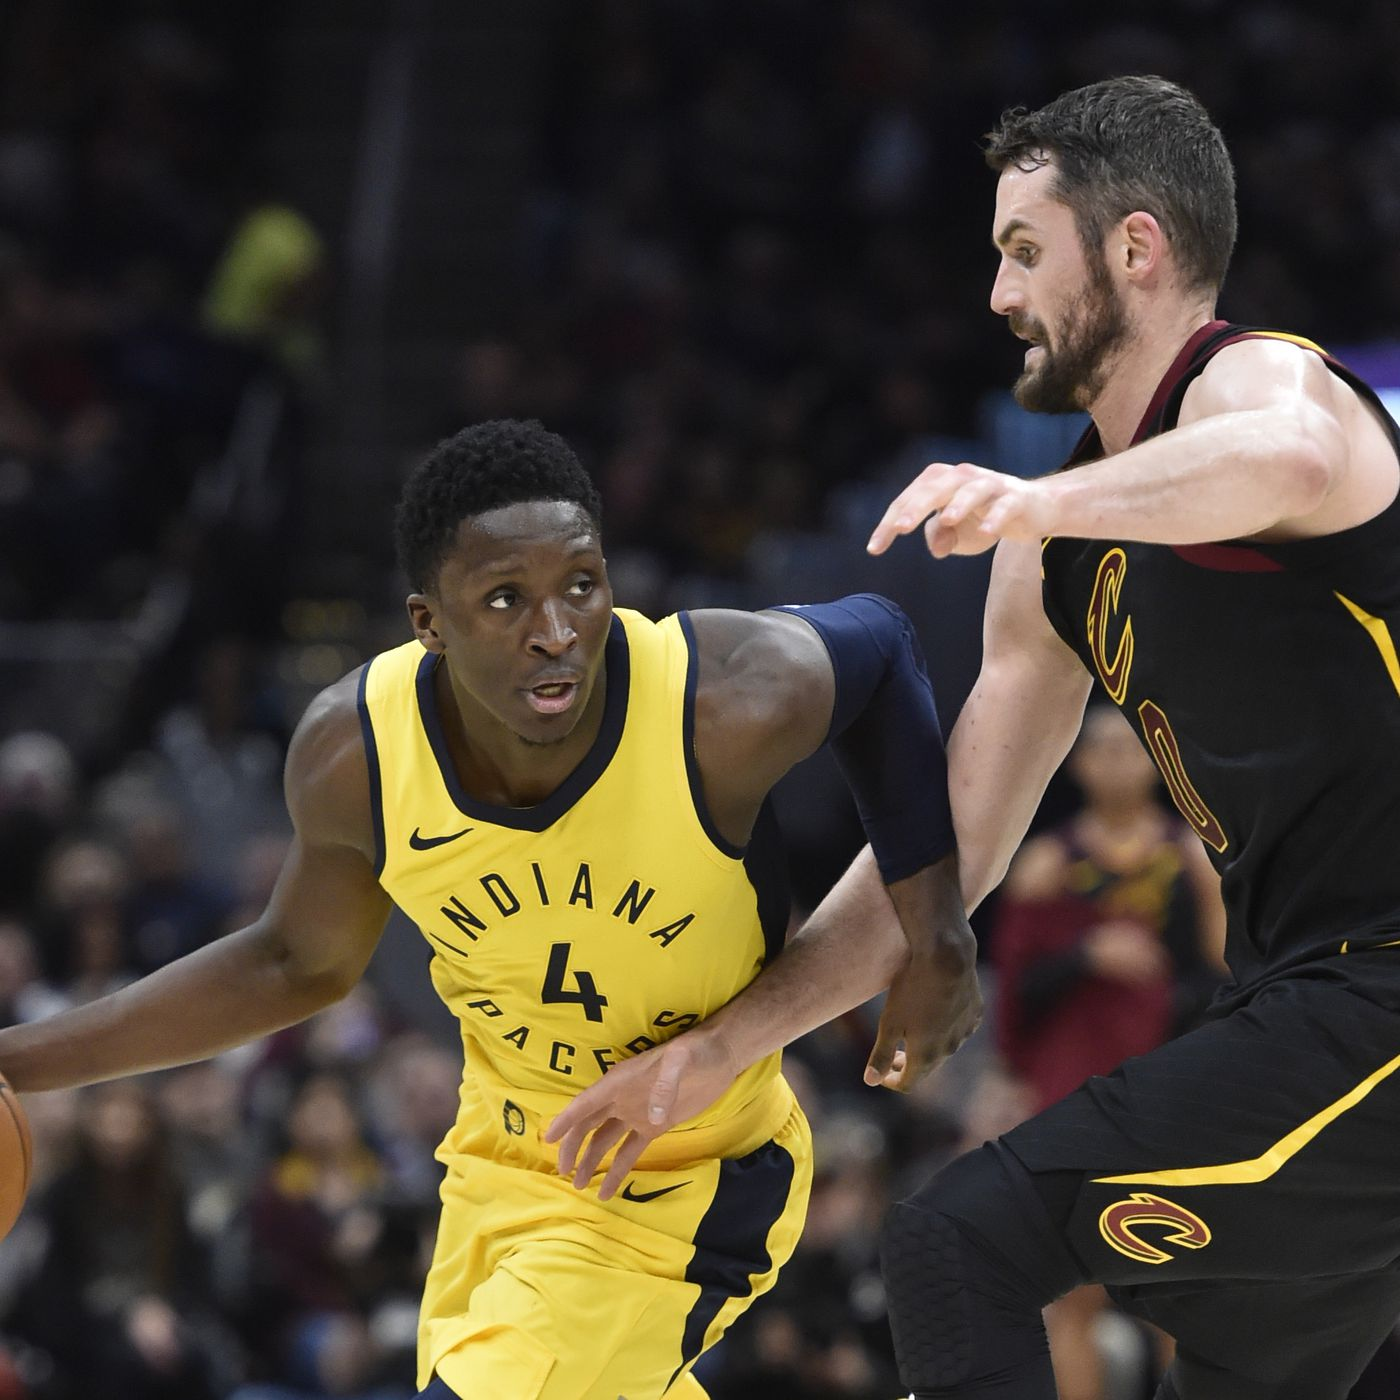 Pacers vs. Cavs 2018 results  Indiana stuns LeBron James with an 18-point  beatdown ac90aacaf